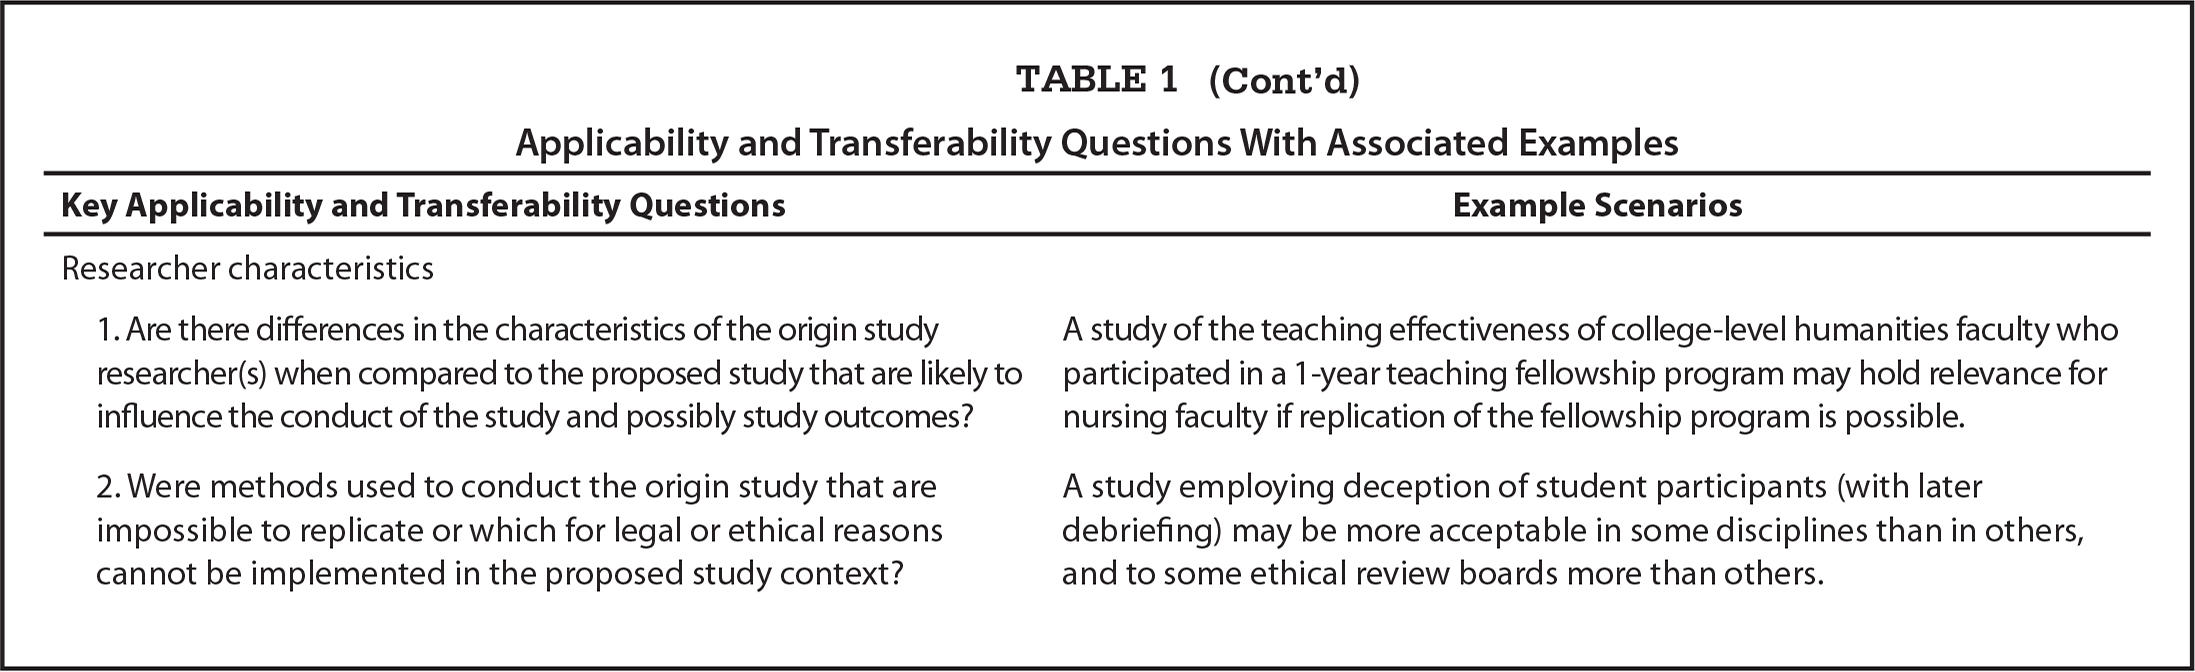 Applicability and Transferability Questions With Associated Examples